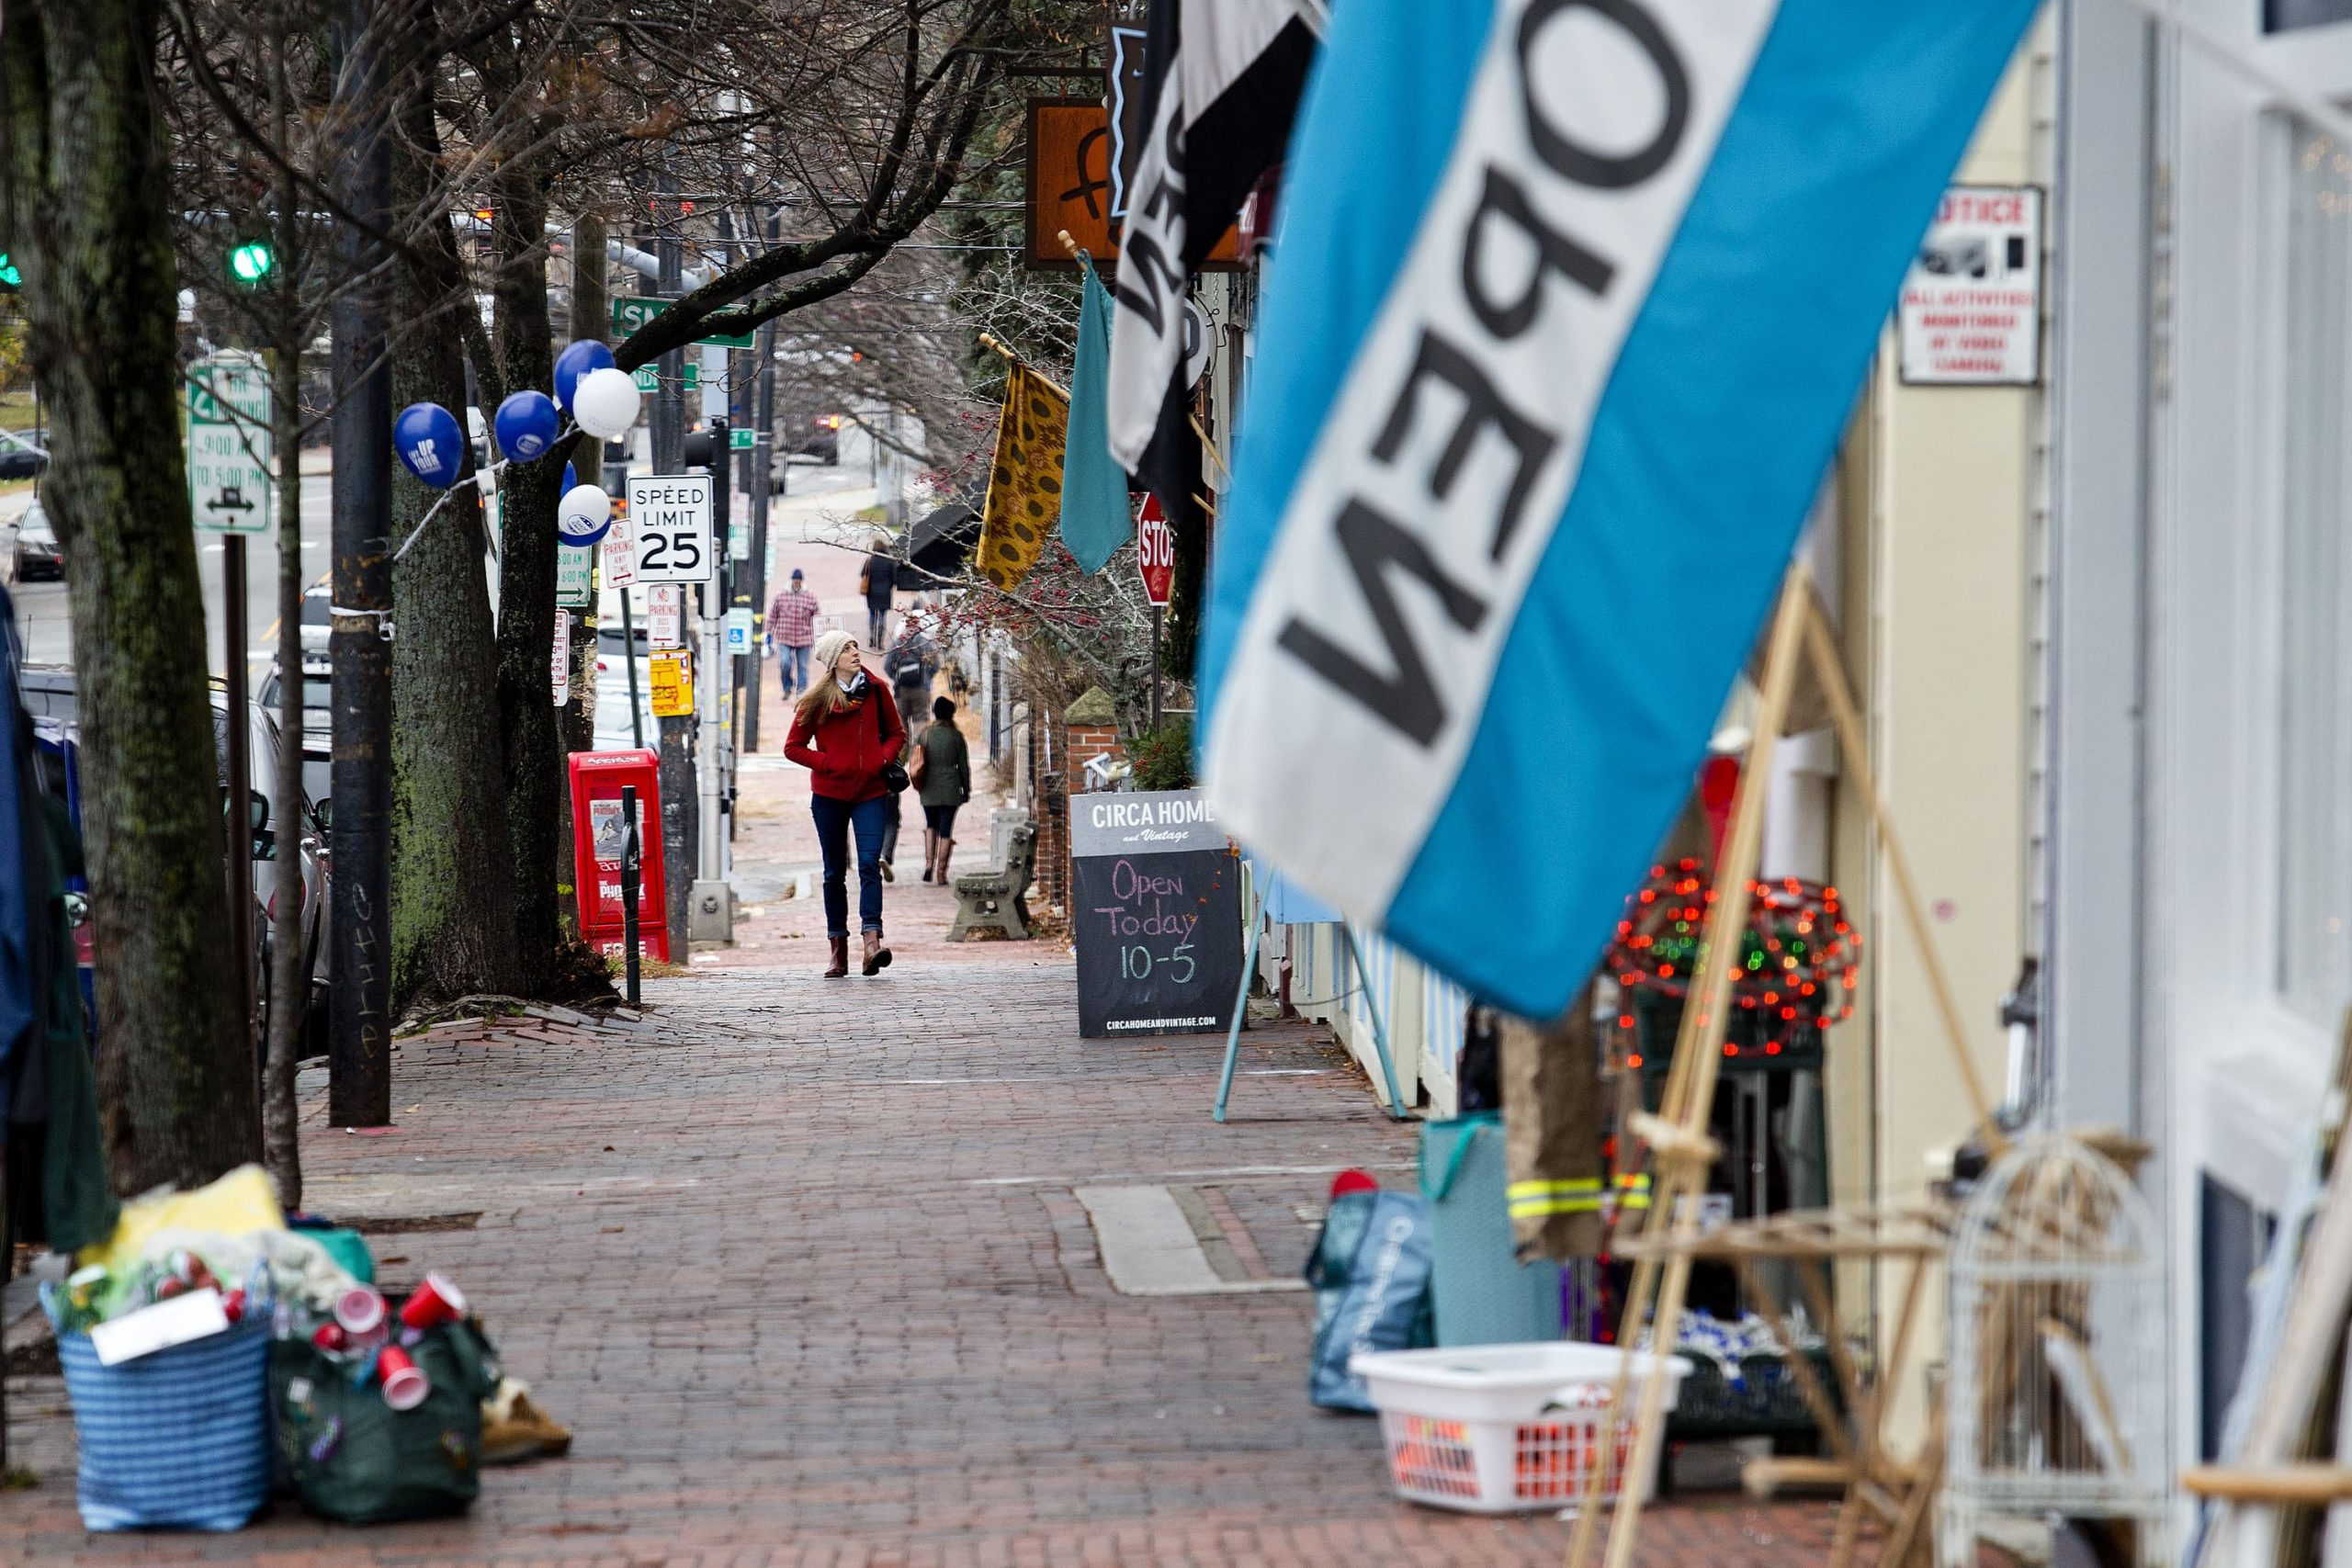 Main Street pins hopes on Small Business Saturday sales to help stay afloat